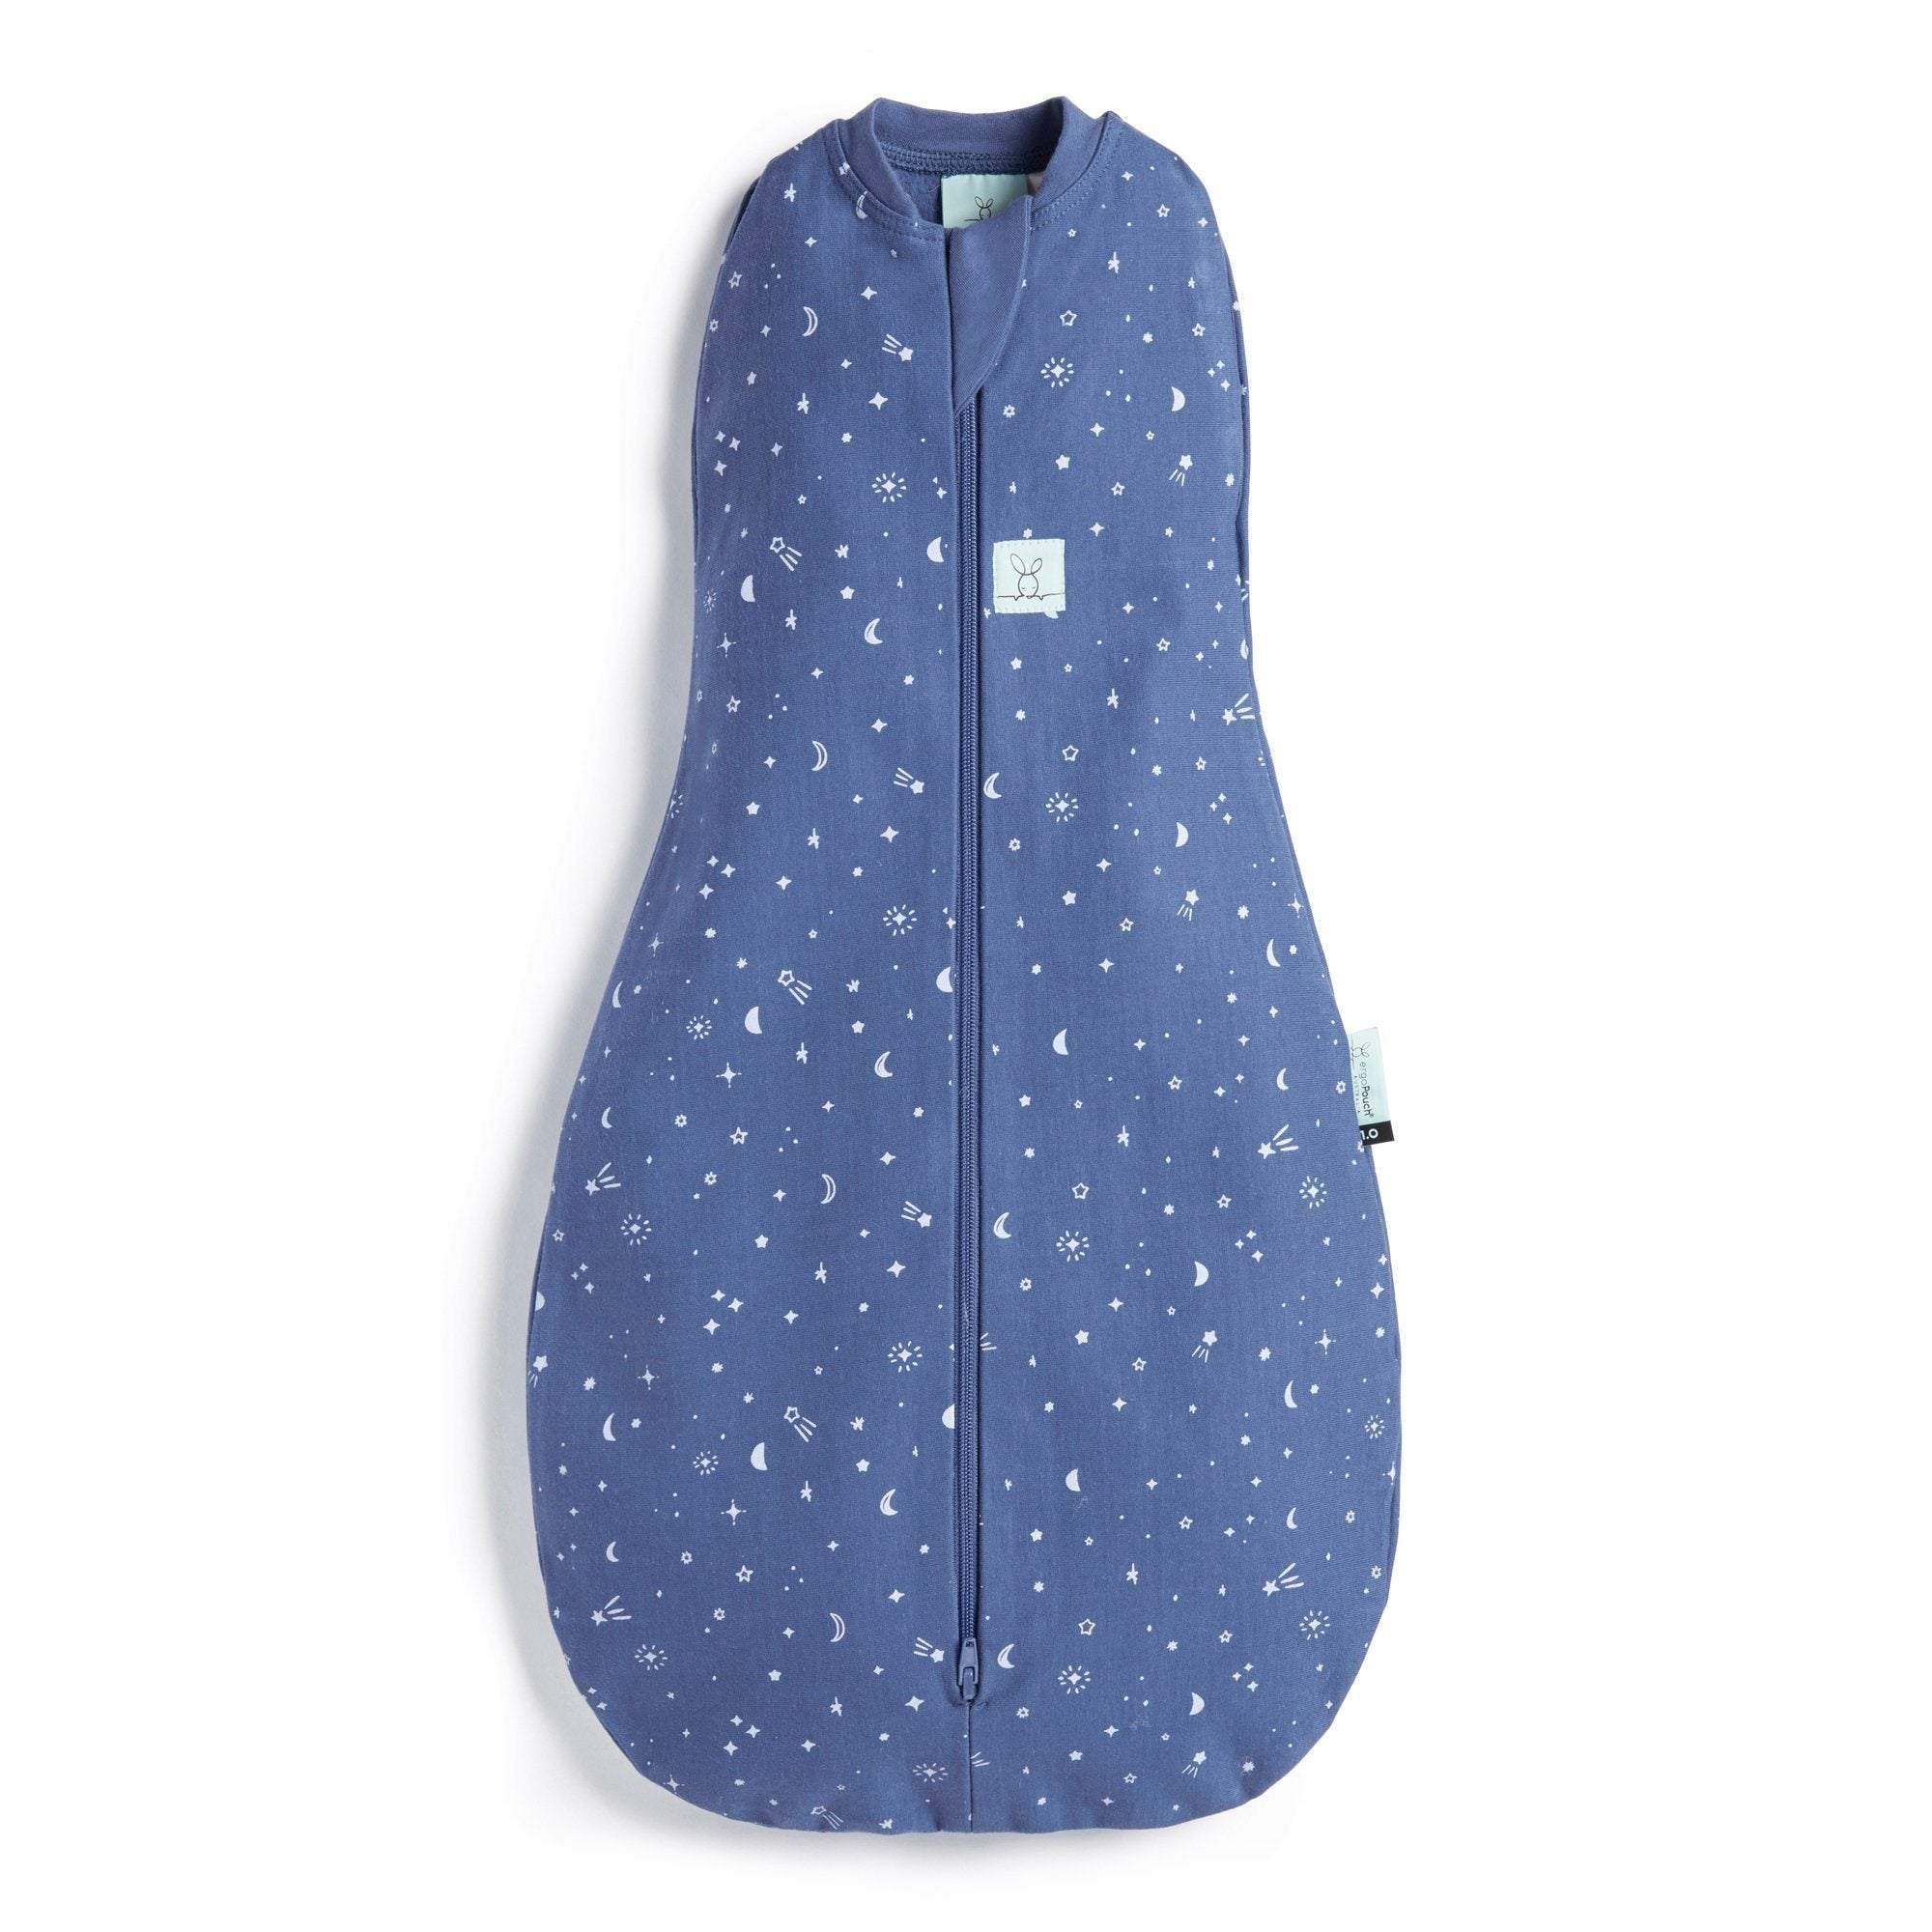 Cocoon Swaddle Bag 1.0 tog (Night Sky)